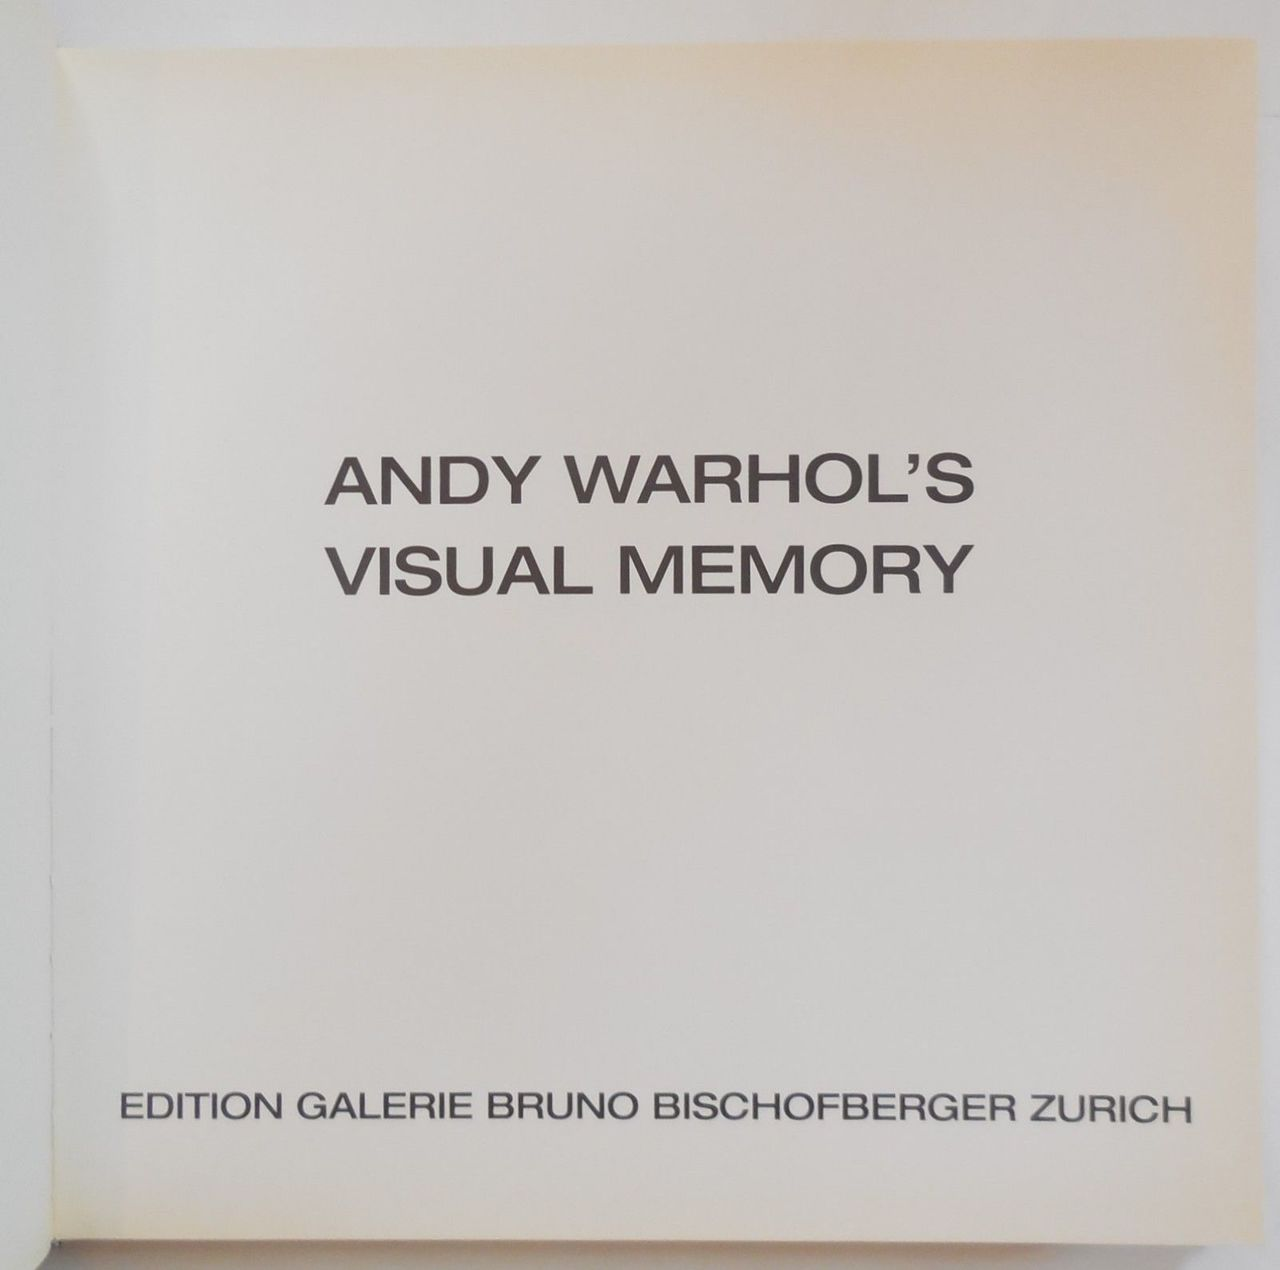 ANDY WARHOL'S VISUAL MEMORY, by Bruno Bischofberger - 2001